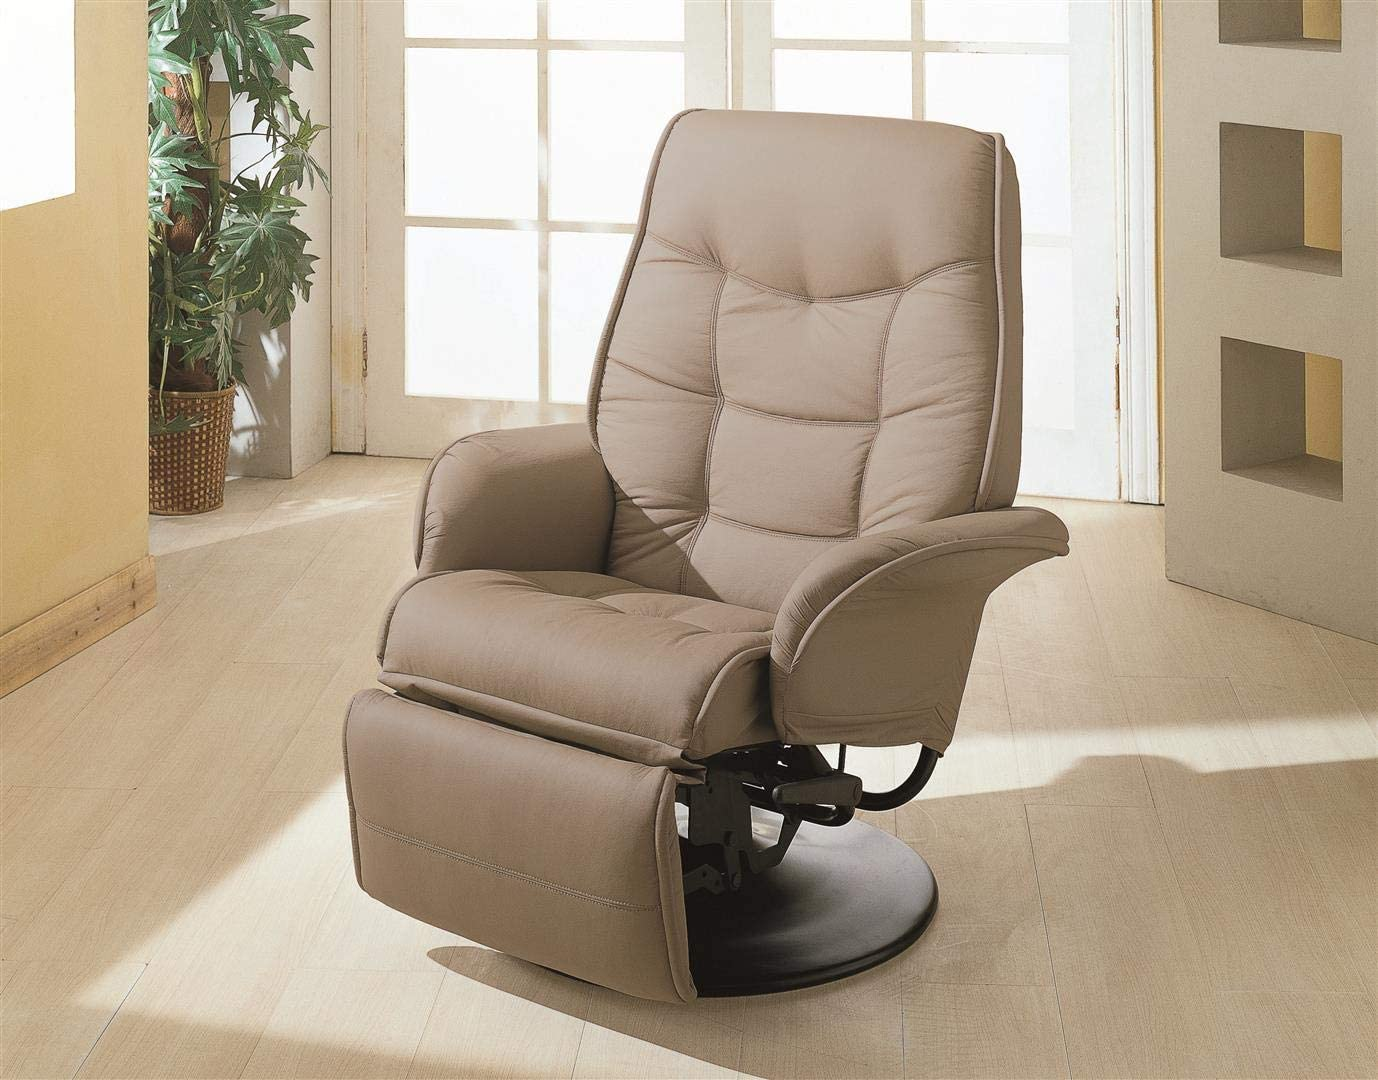 Coaster Home Furnishings Alvaro Swivel Recliner with Flared Arms Beige,